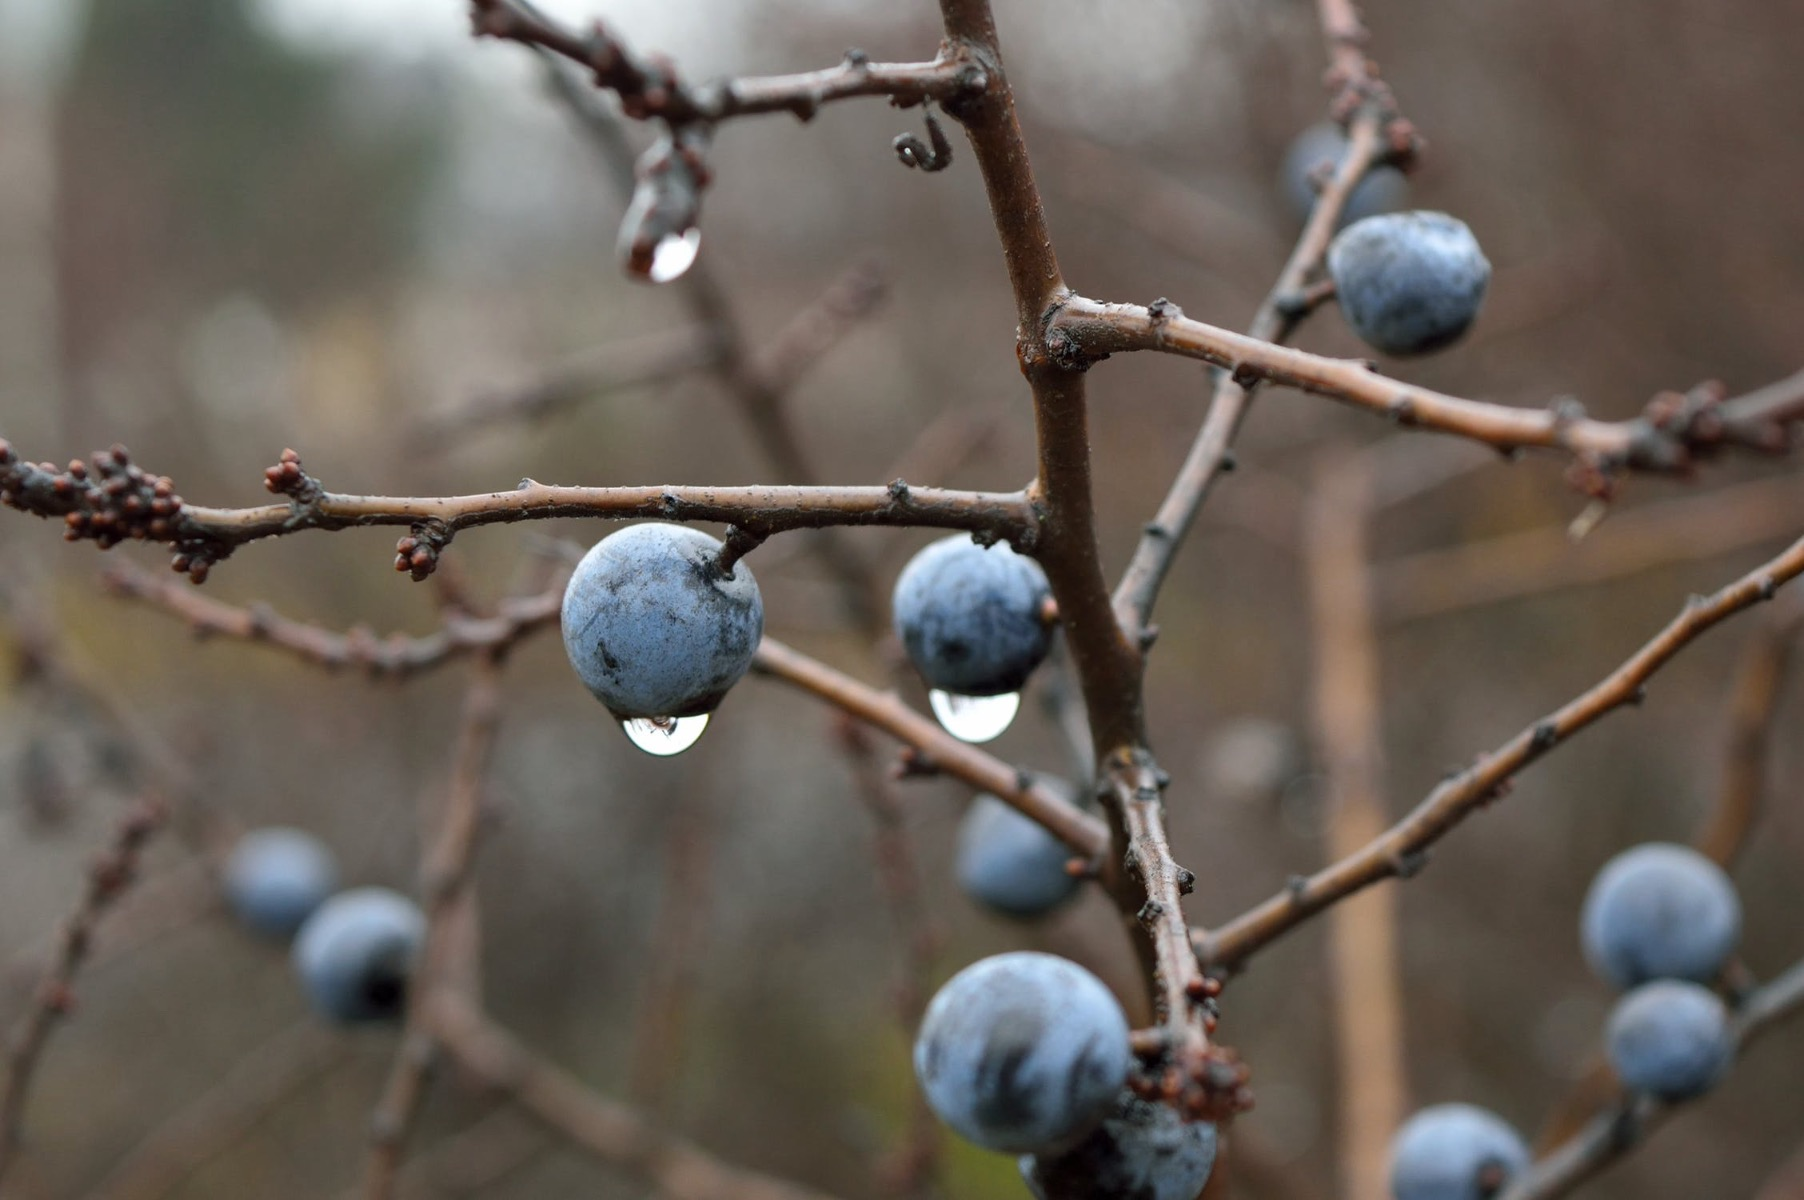 A selection of blue sloes on a leafless branch